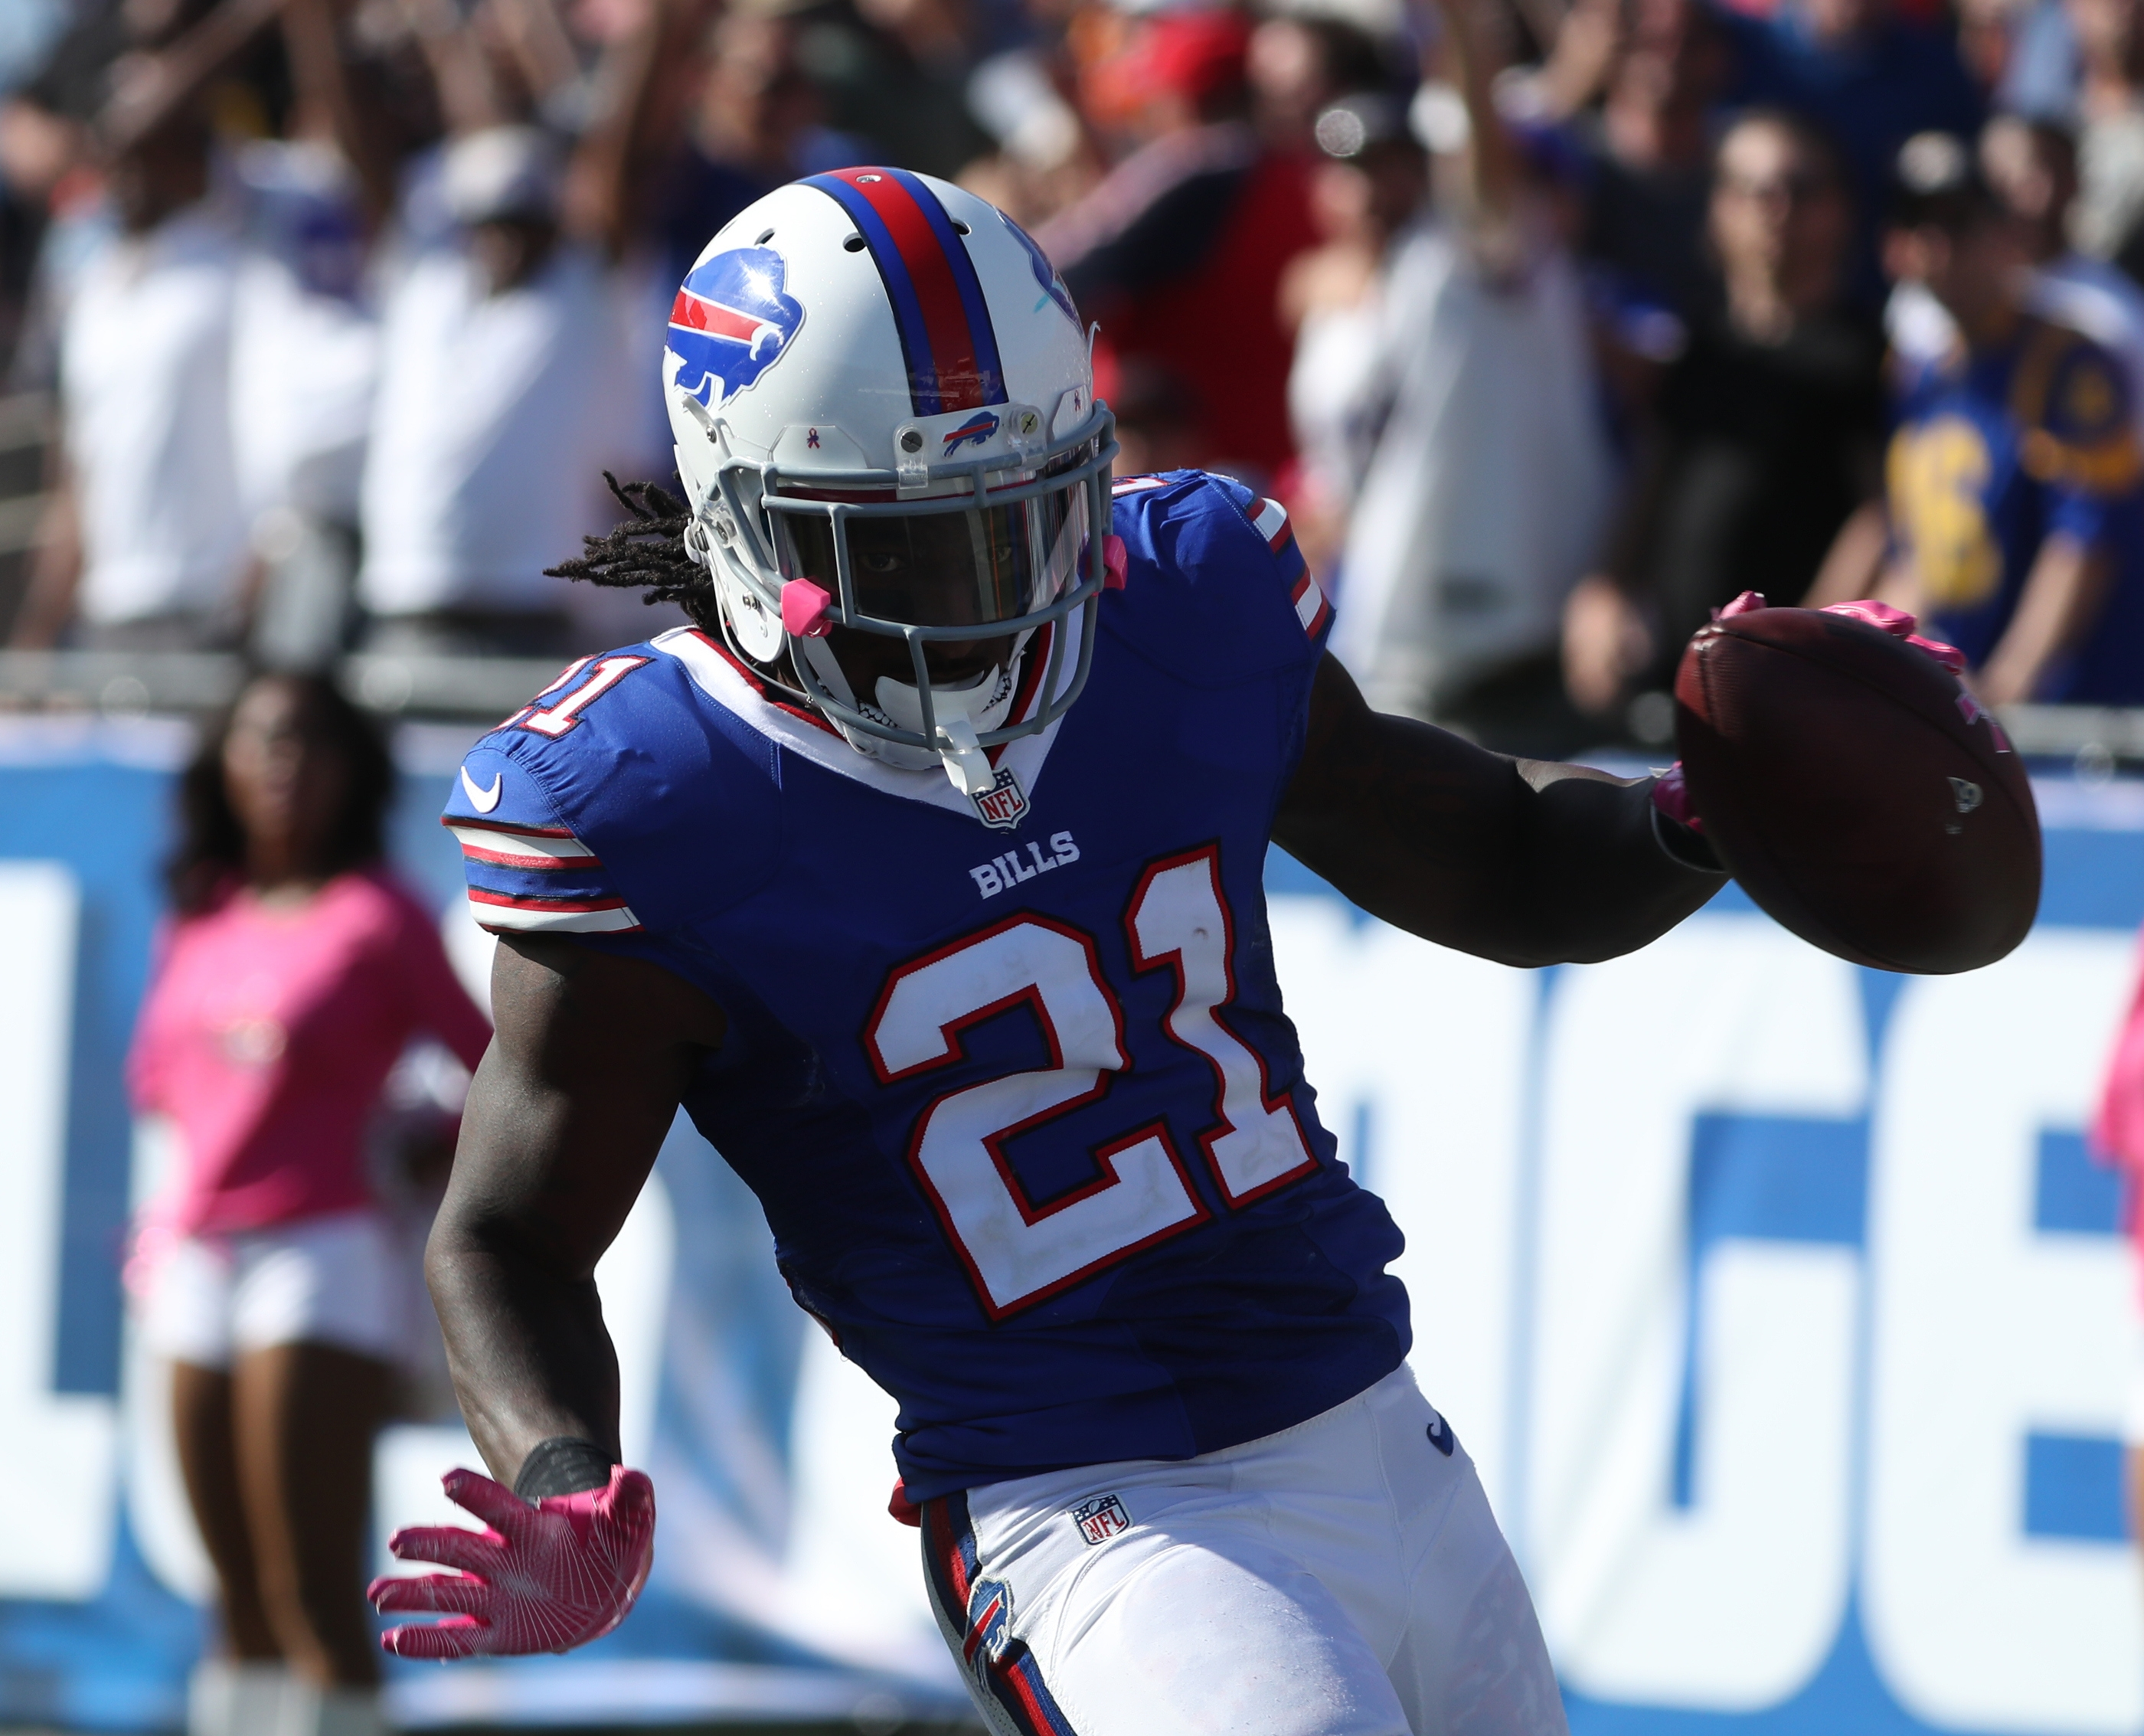 The Bills have been feasting on turnovers, such as Nickell Robey-Coleman's interception for a touchdown Sunday against the Rams.